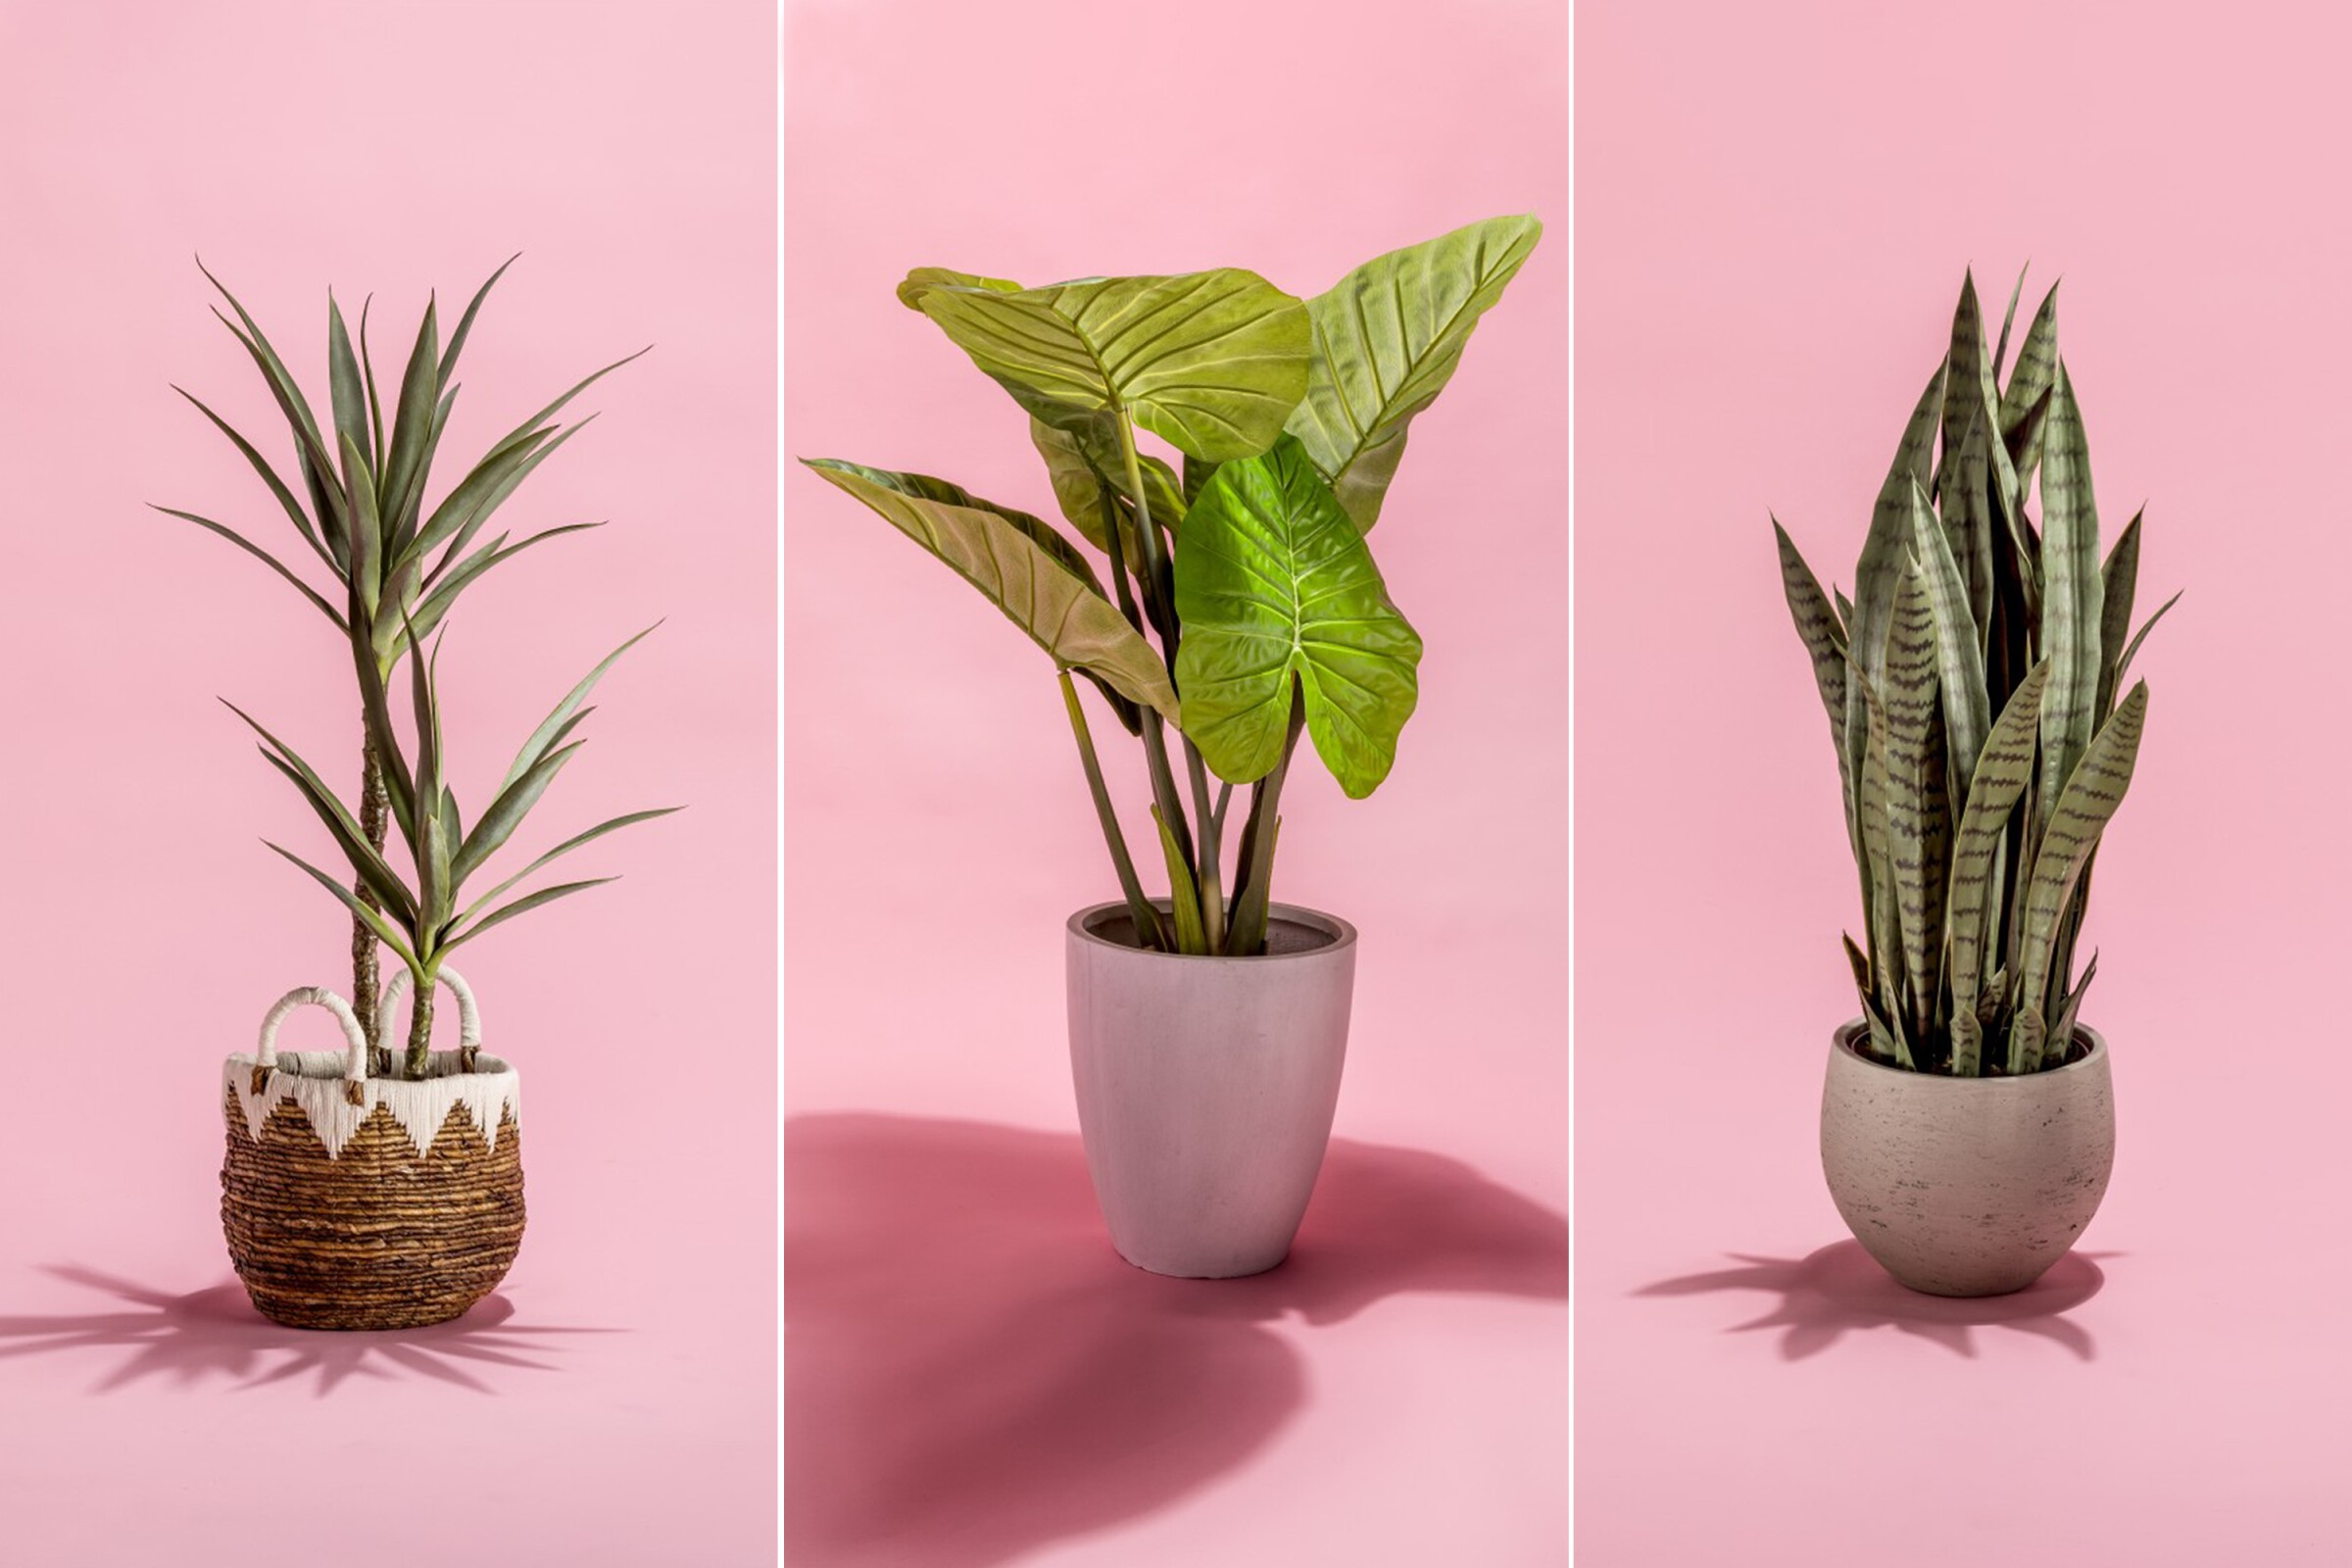 Faux real: Fake plants that would fool Mother Nature - Los Angeles Times